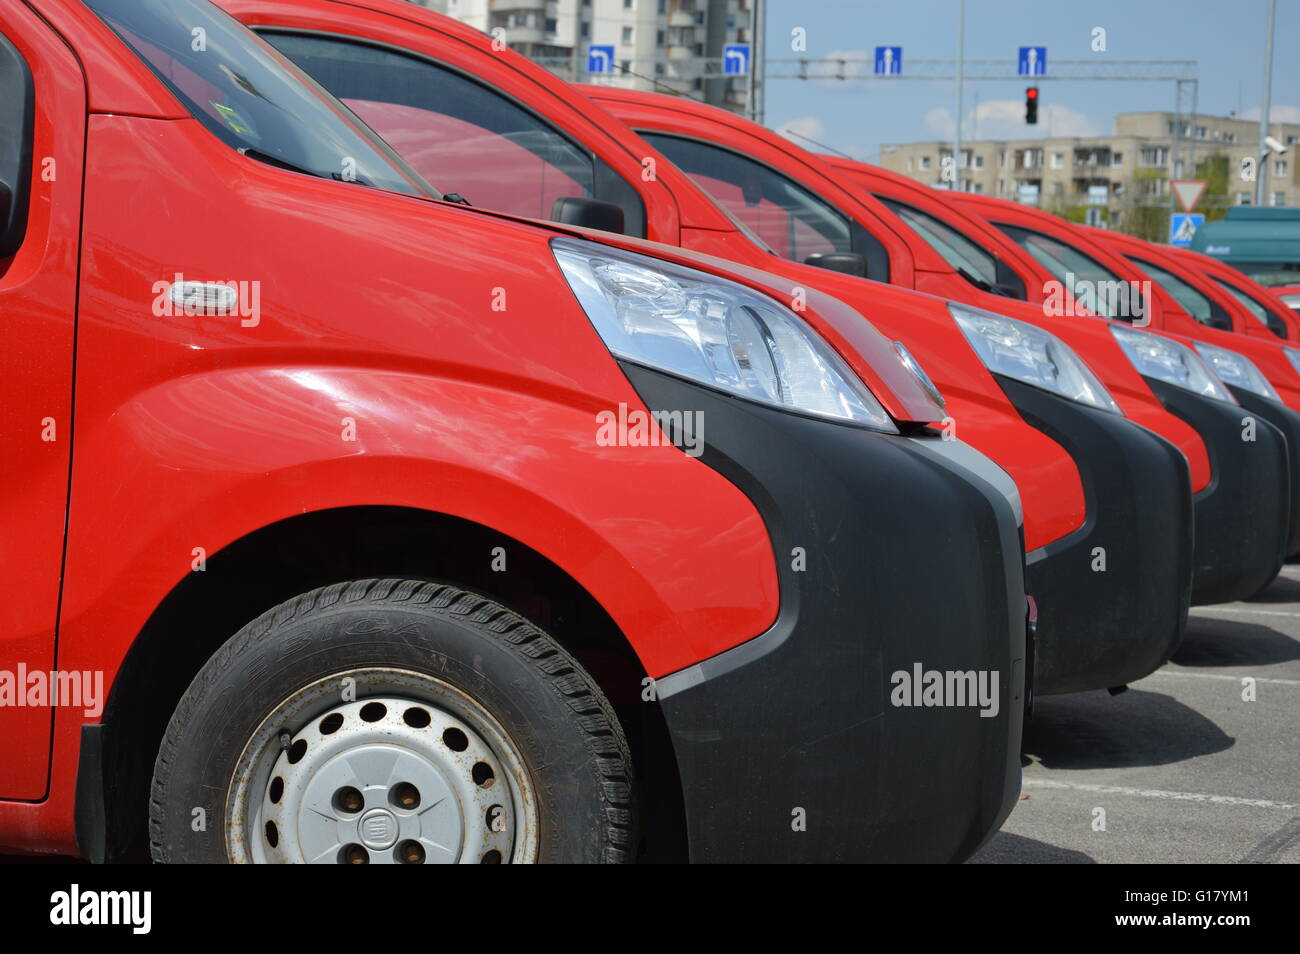 Row of red unused cars Stock Photo, Royalty Free Image: 104052257 ...